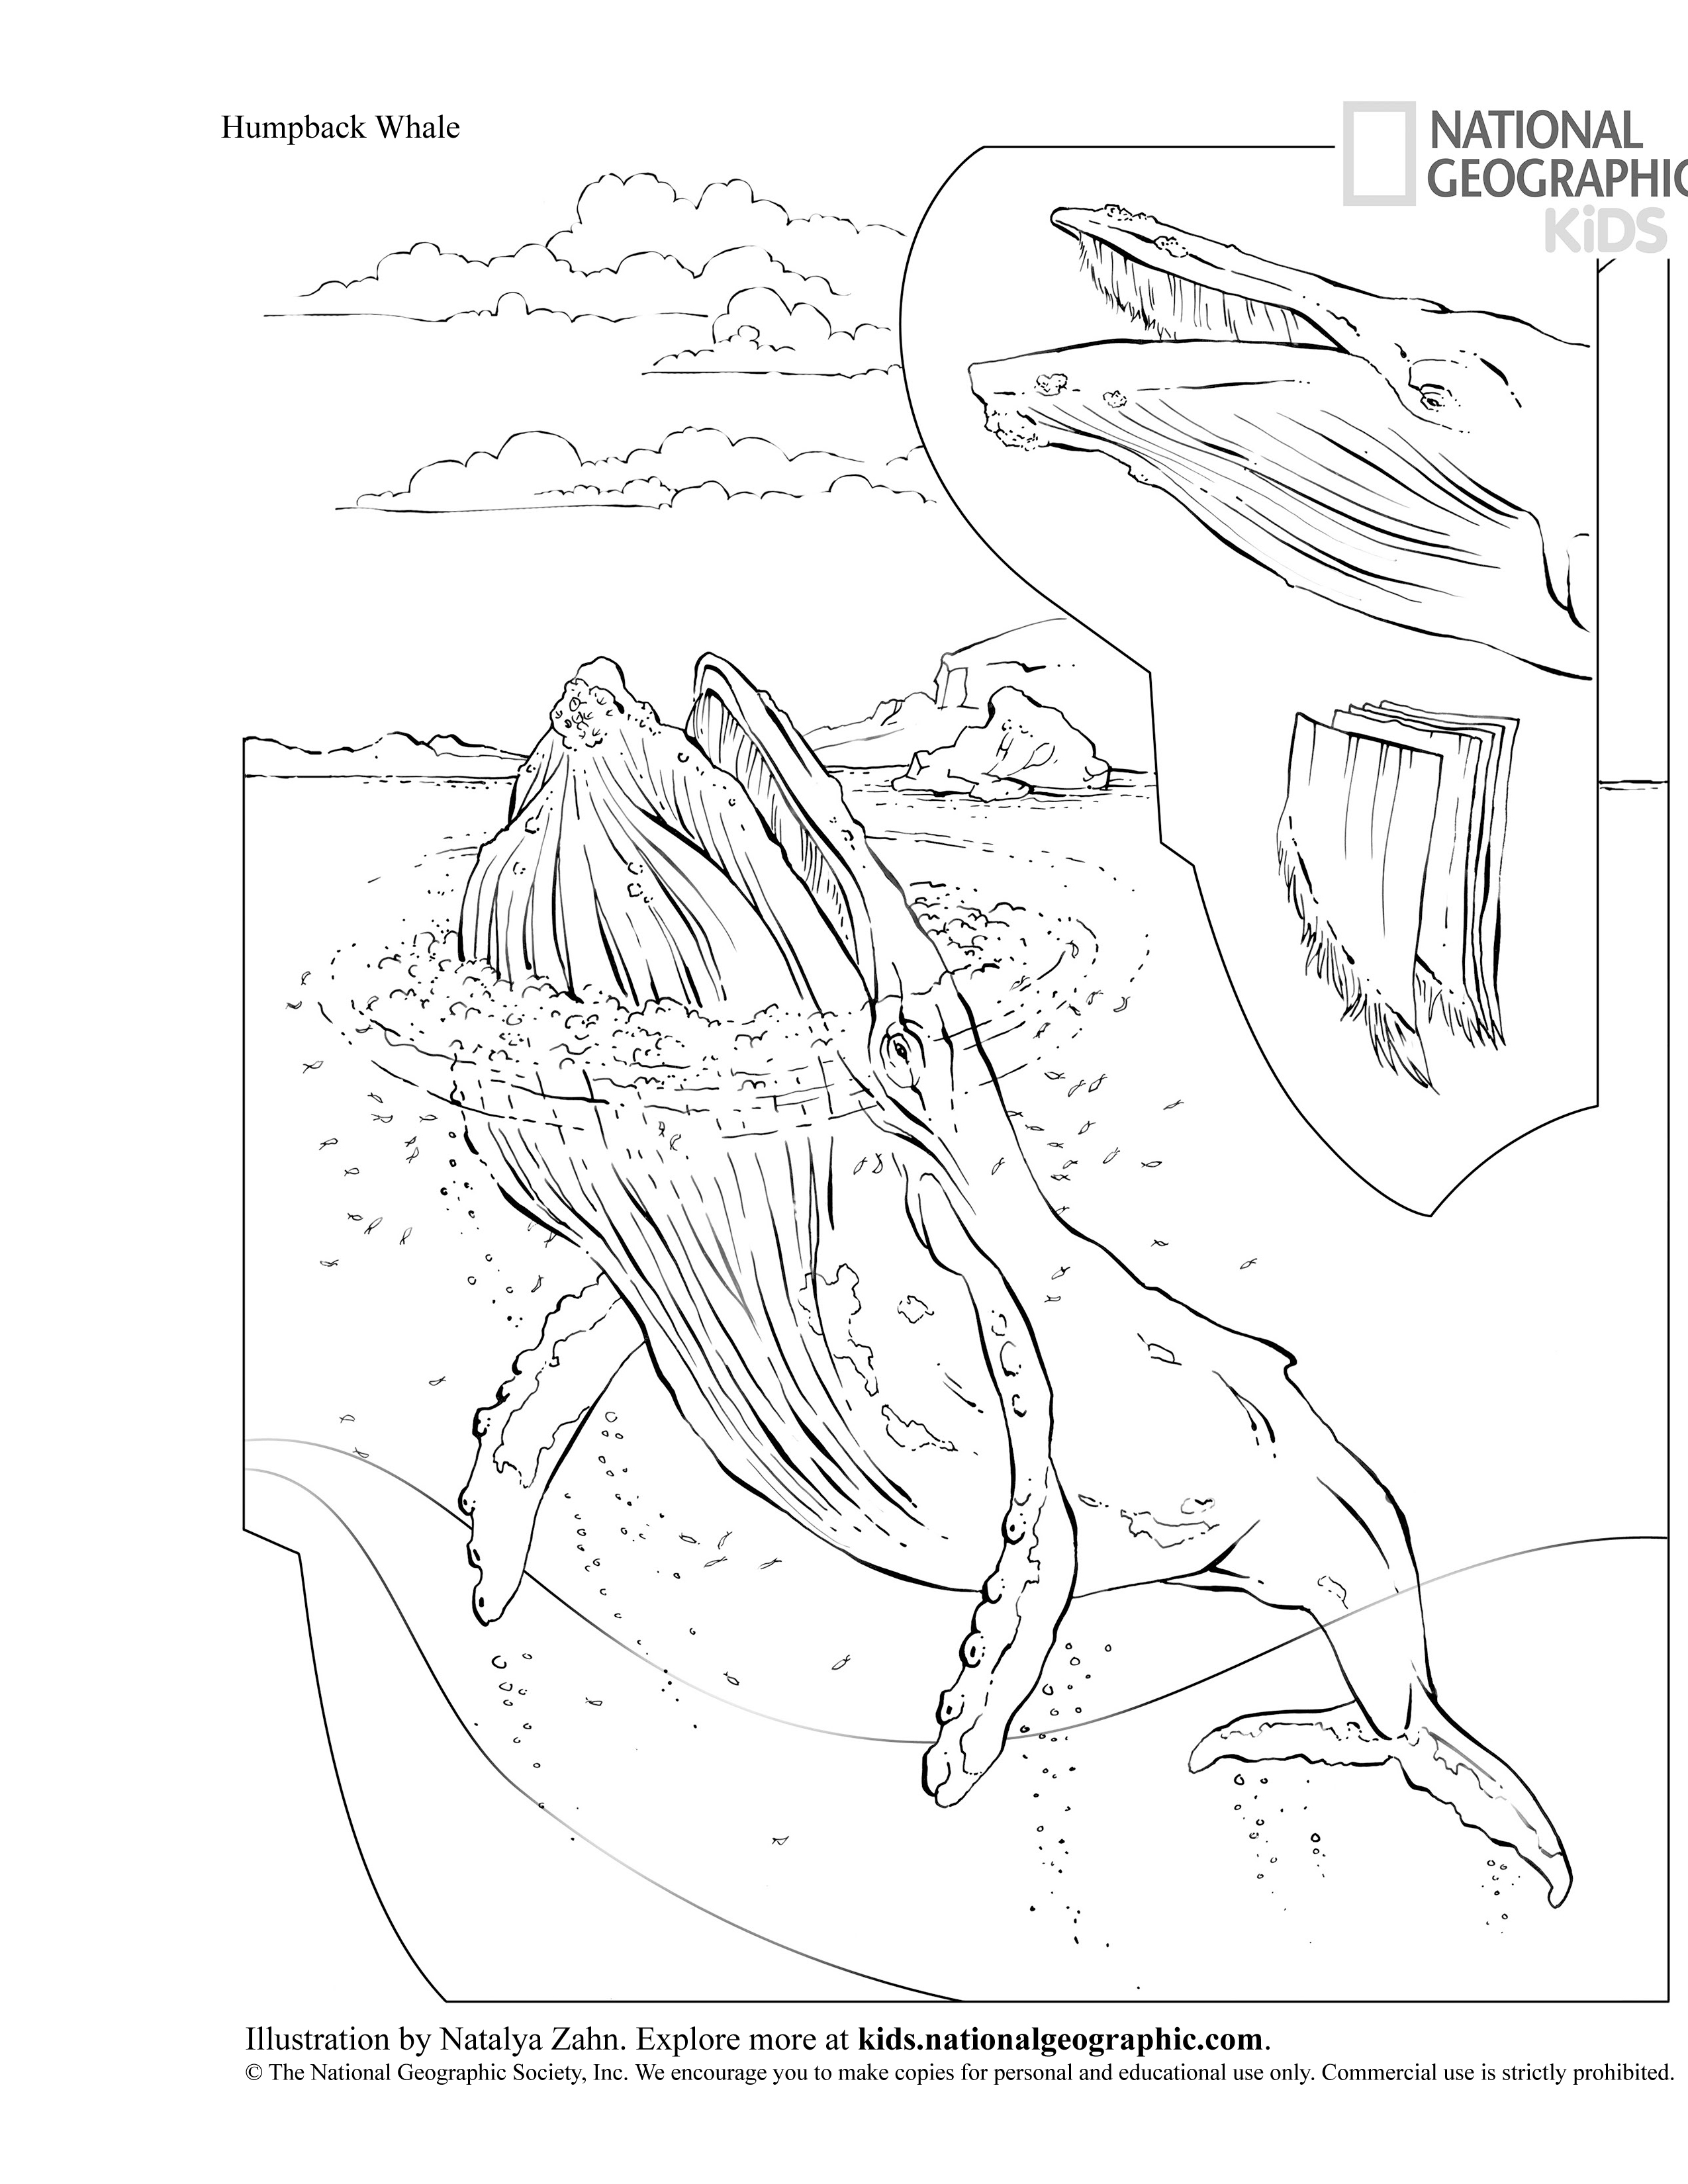 Humpback Whale Drawing at GetDrawings.com | Free for personal use ...